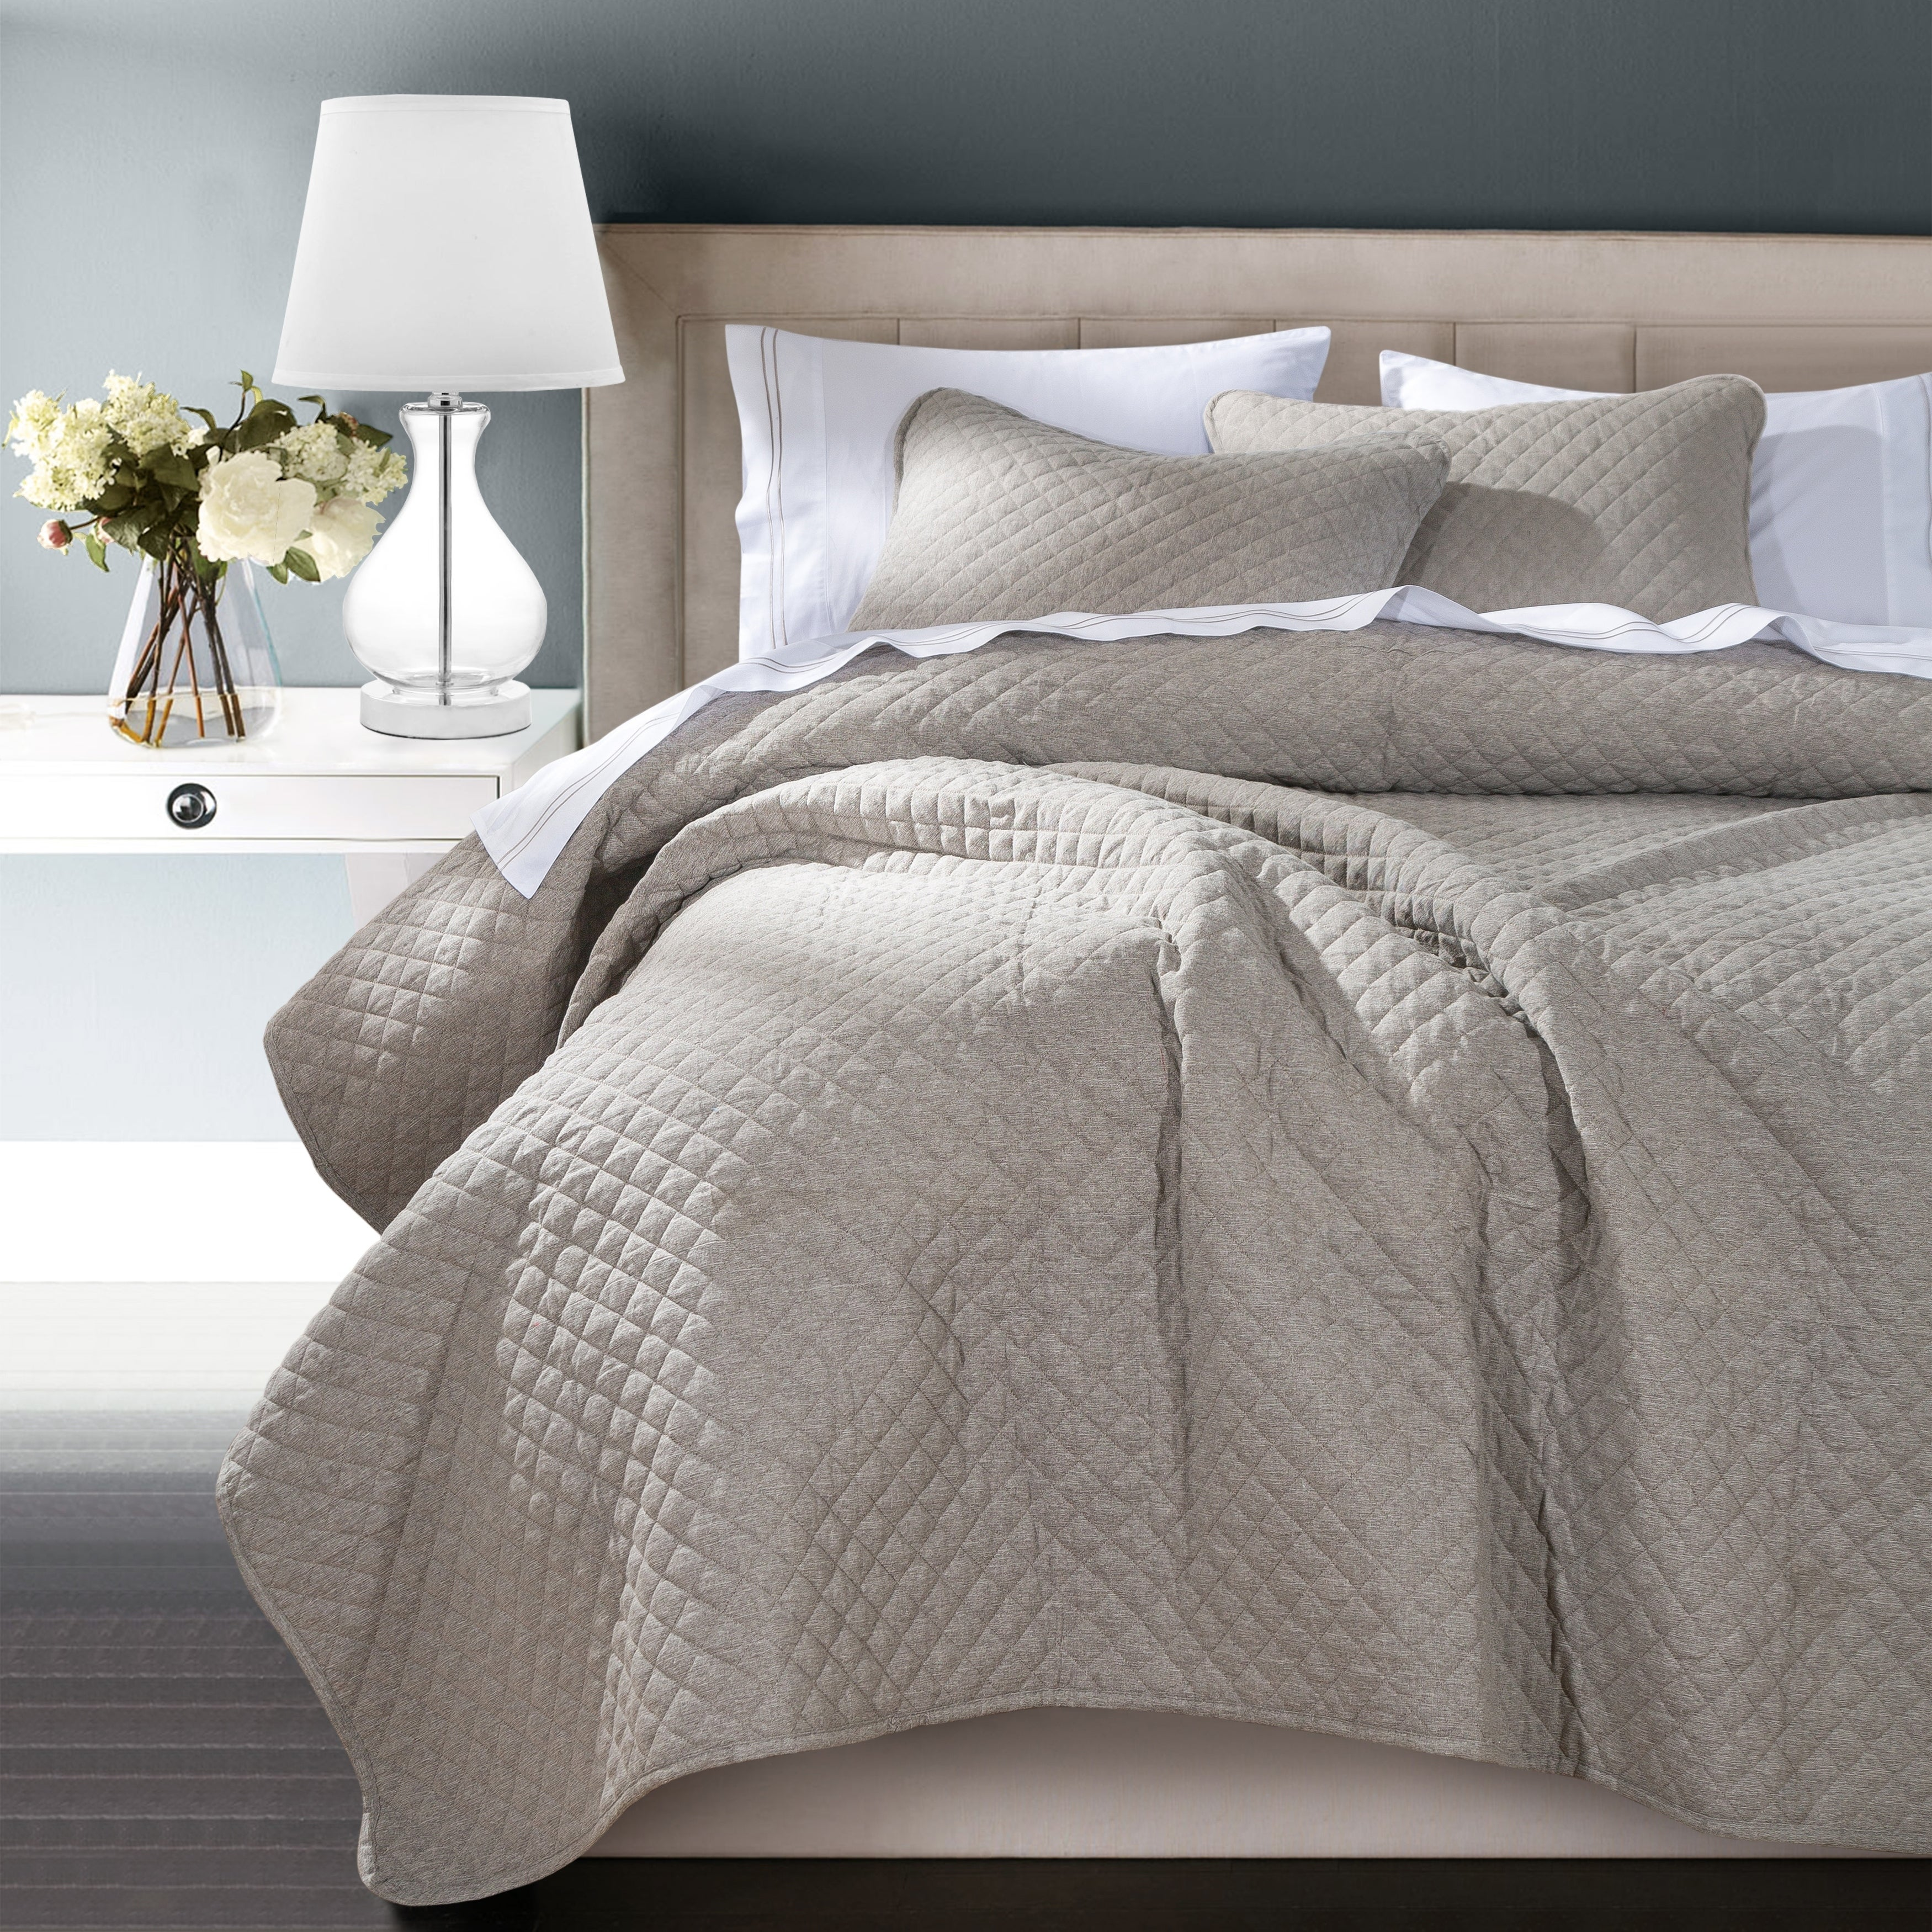 Twin,Ivory ARTALL Single Bedspread Classic Printed Quilt Soft Bed Blanket Brushed Microfiber Coverlet 68x86,Candy Pattern